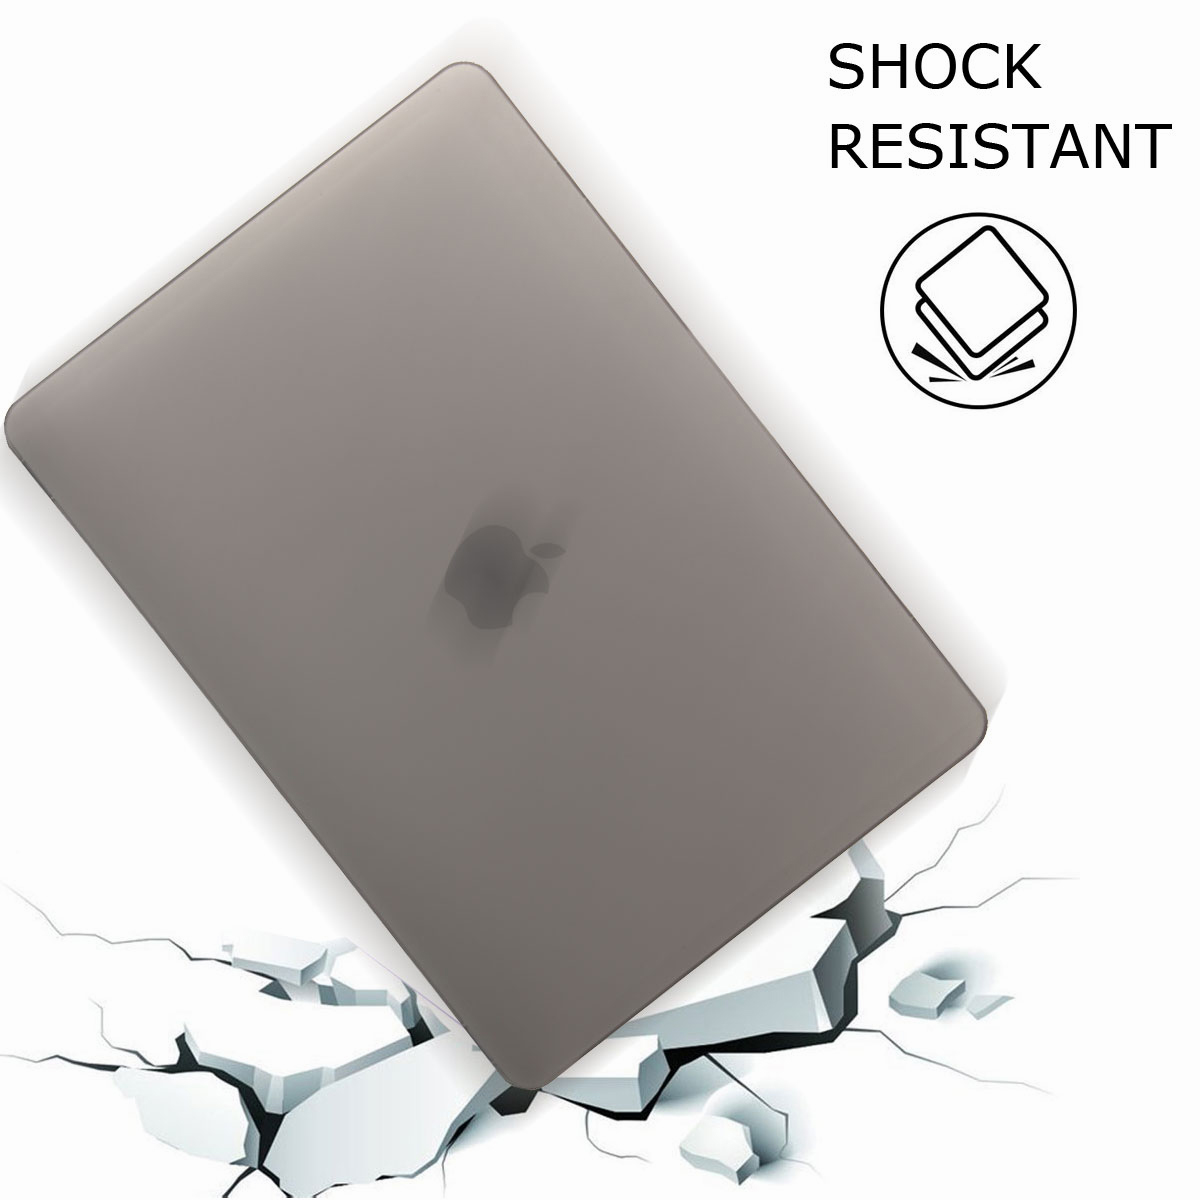 Shockproof-Rubberized-Matte-Hard-Case-Cover-For-Macbook-13-034-15-034-Inch-A1286-A1278 thumbnail 48